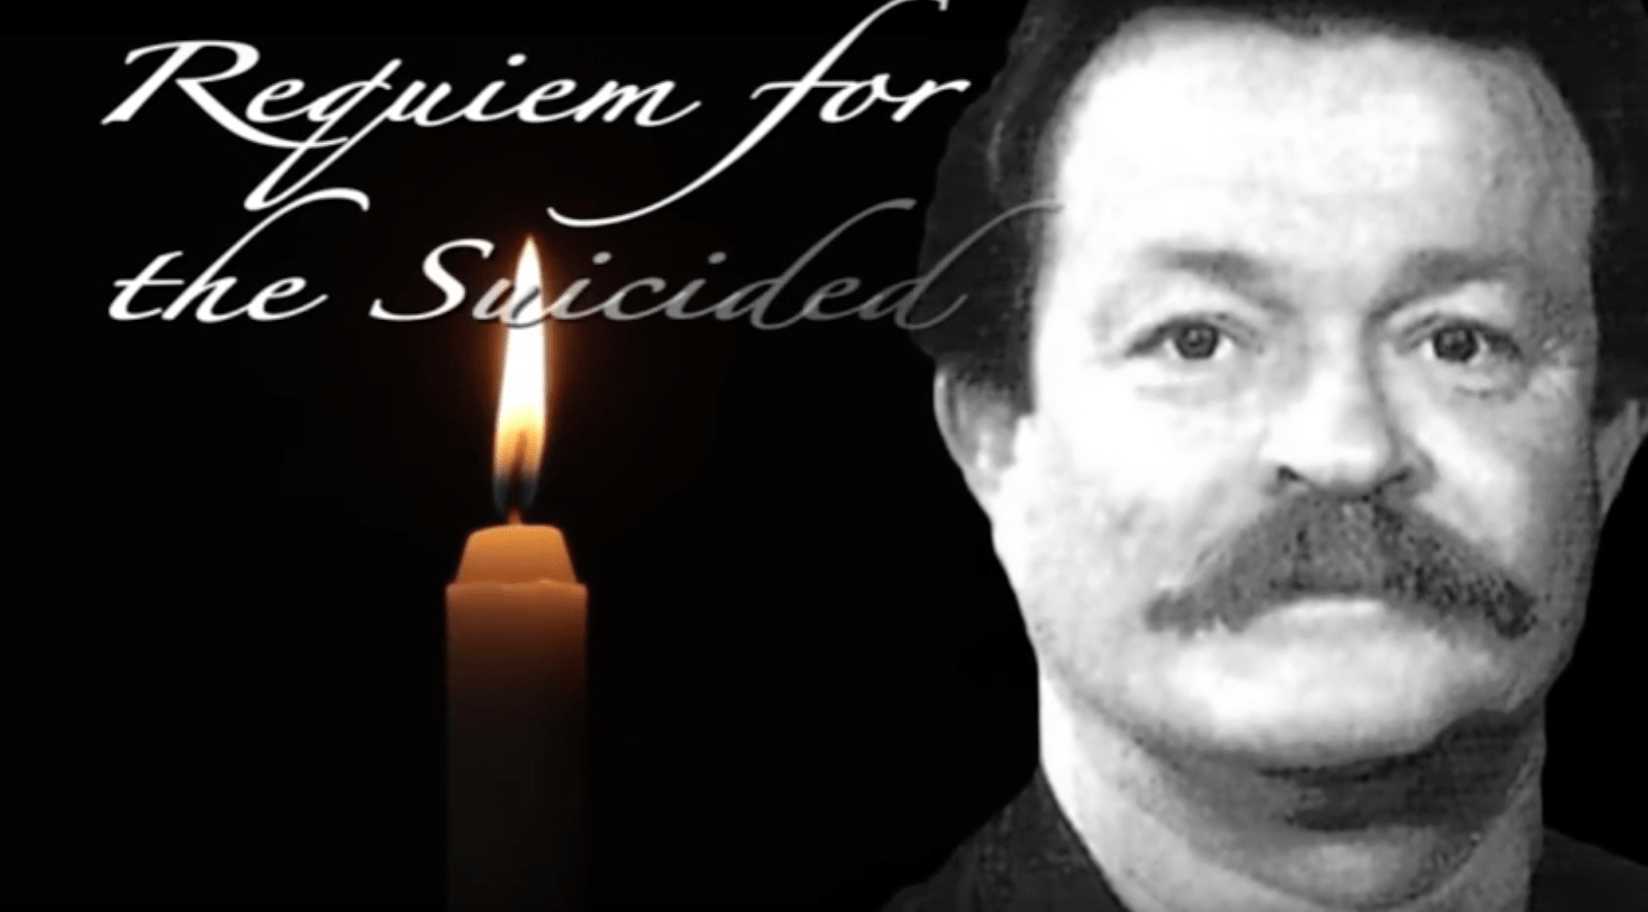 Requiem for the Suicided: Kenneth Trentadue